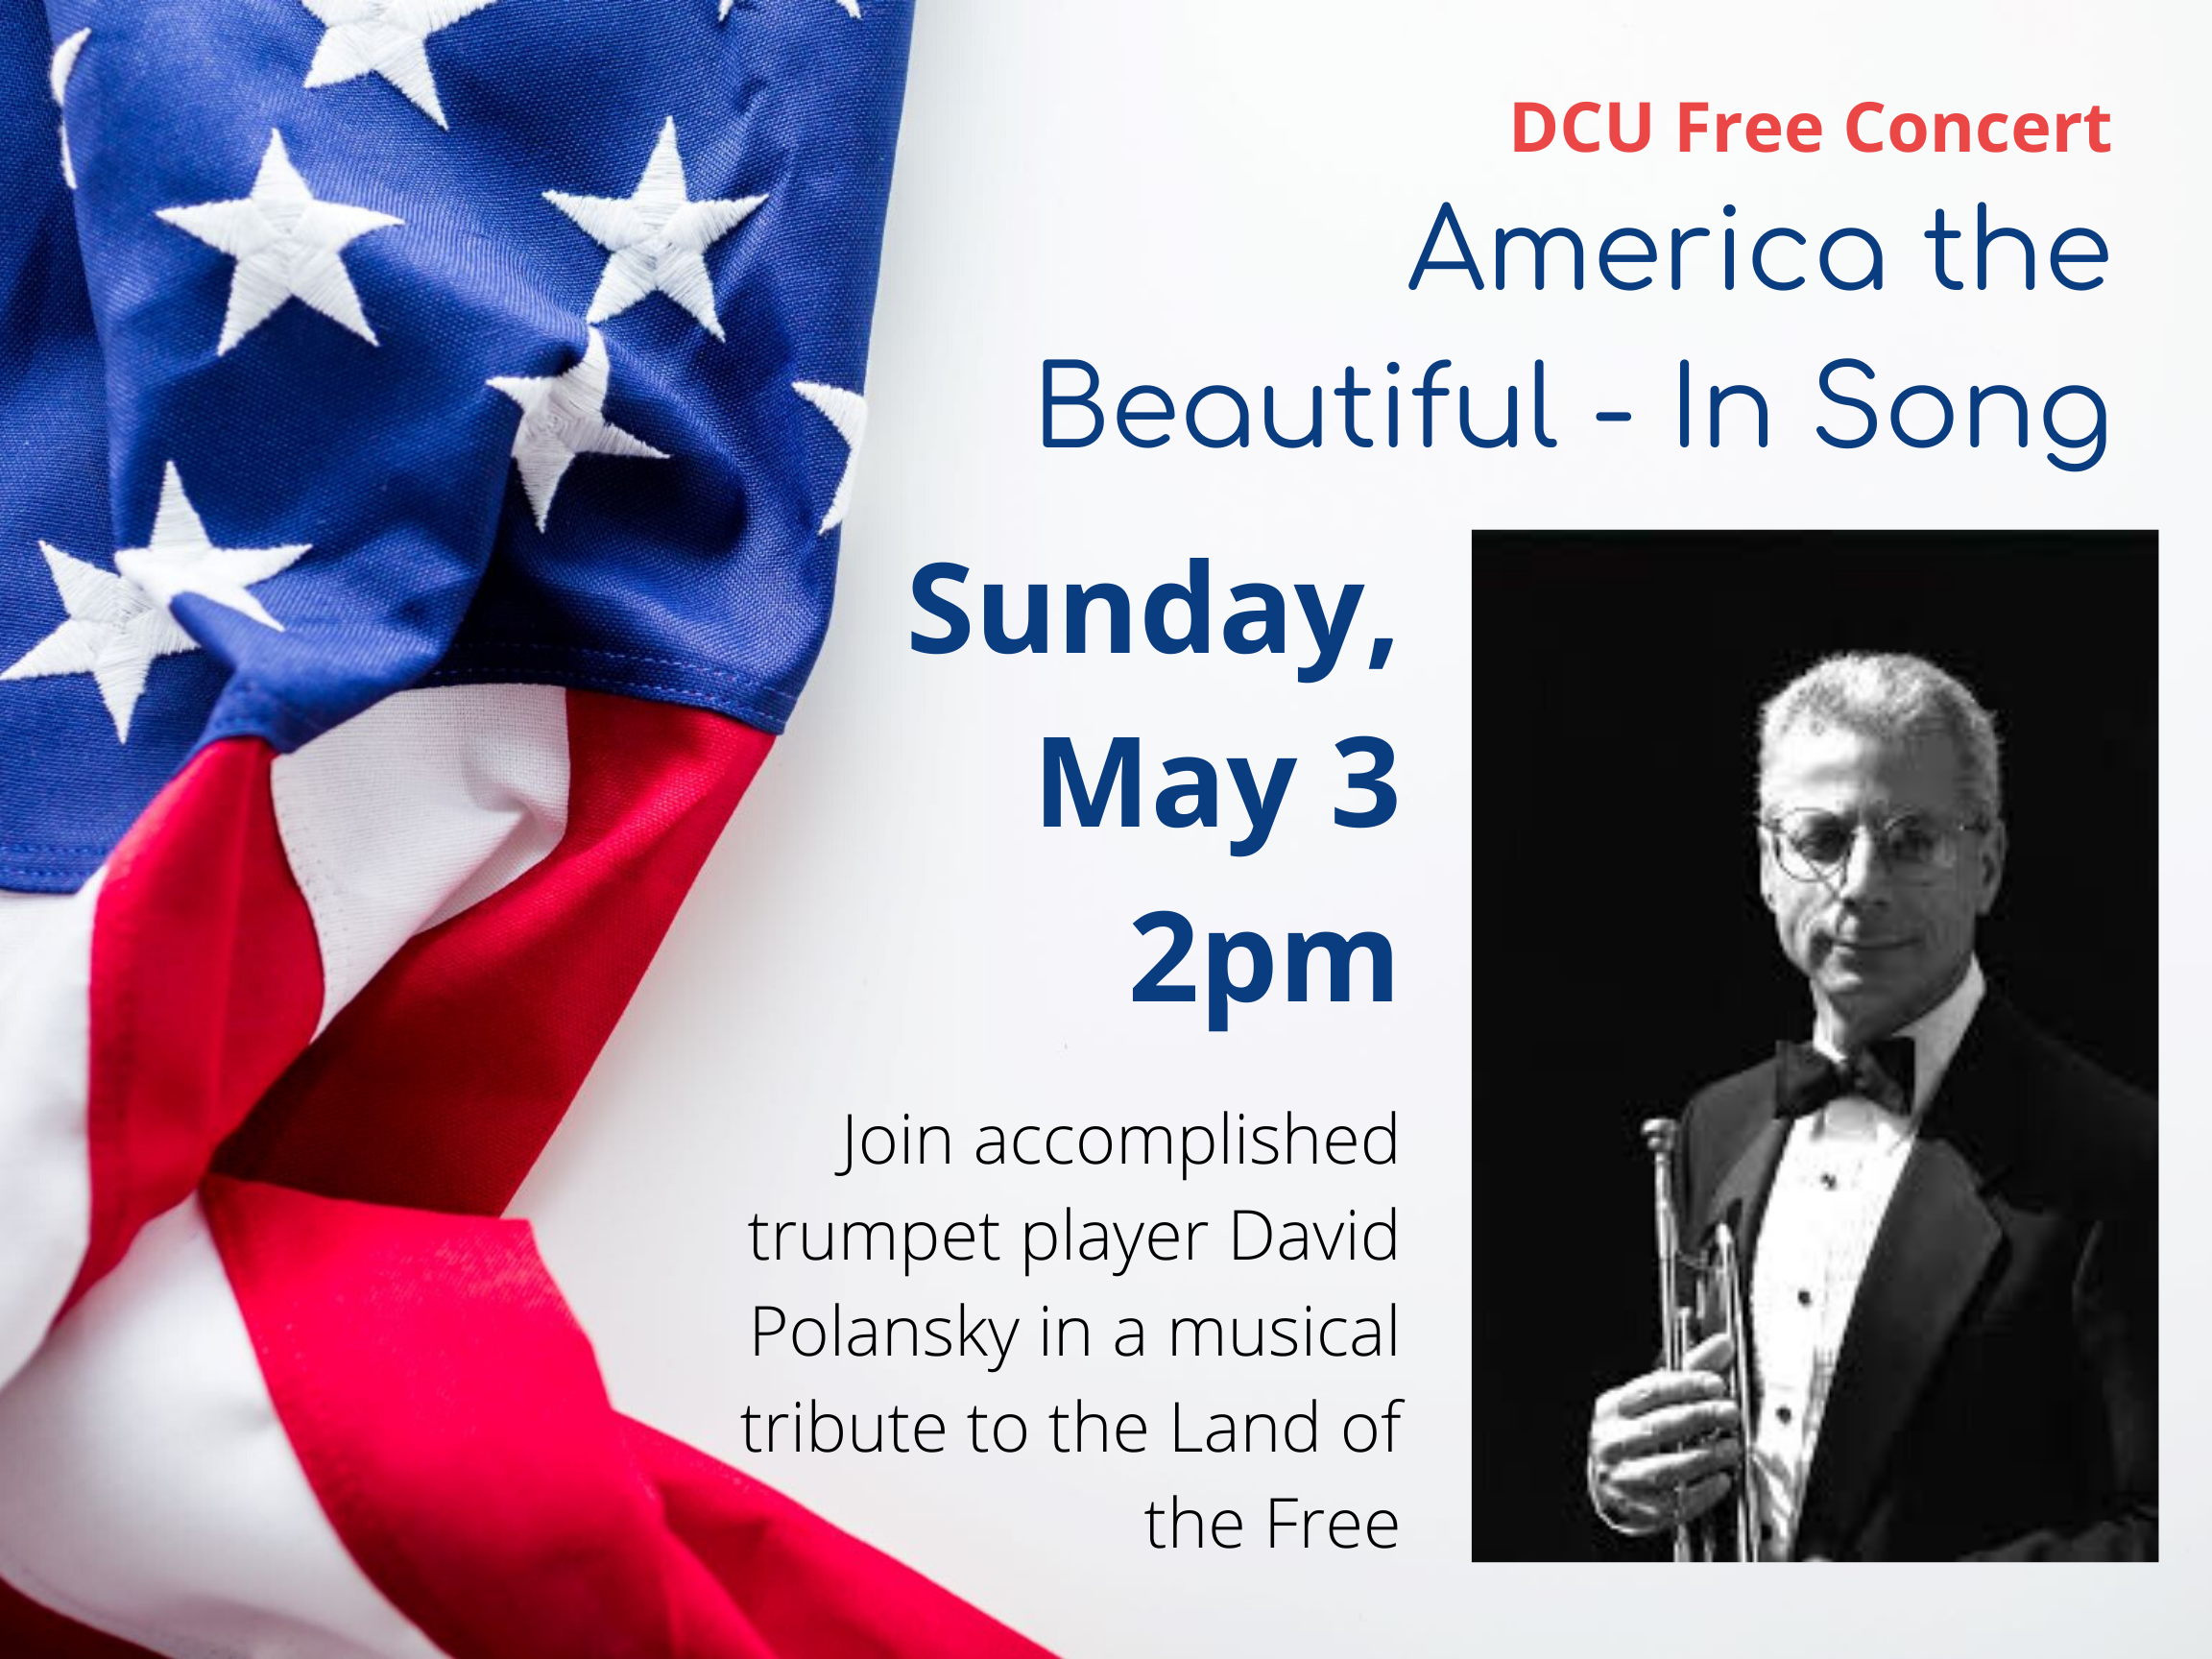 DCU Free Concert: America the Beautiful in Song